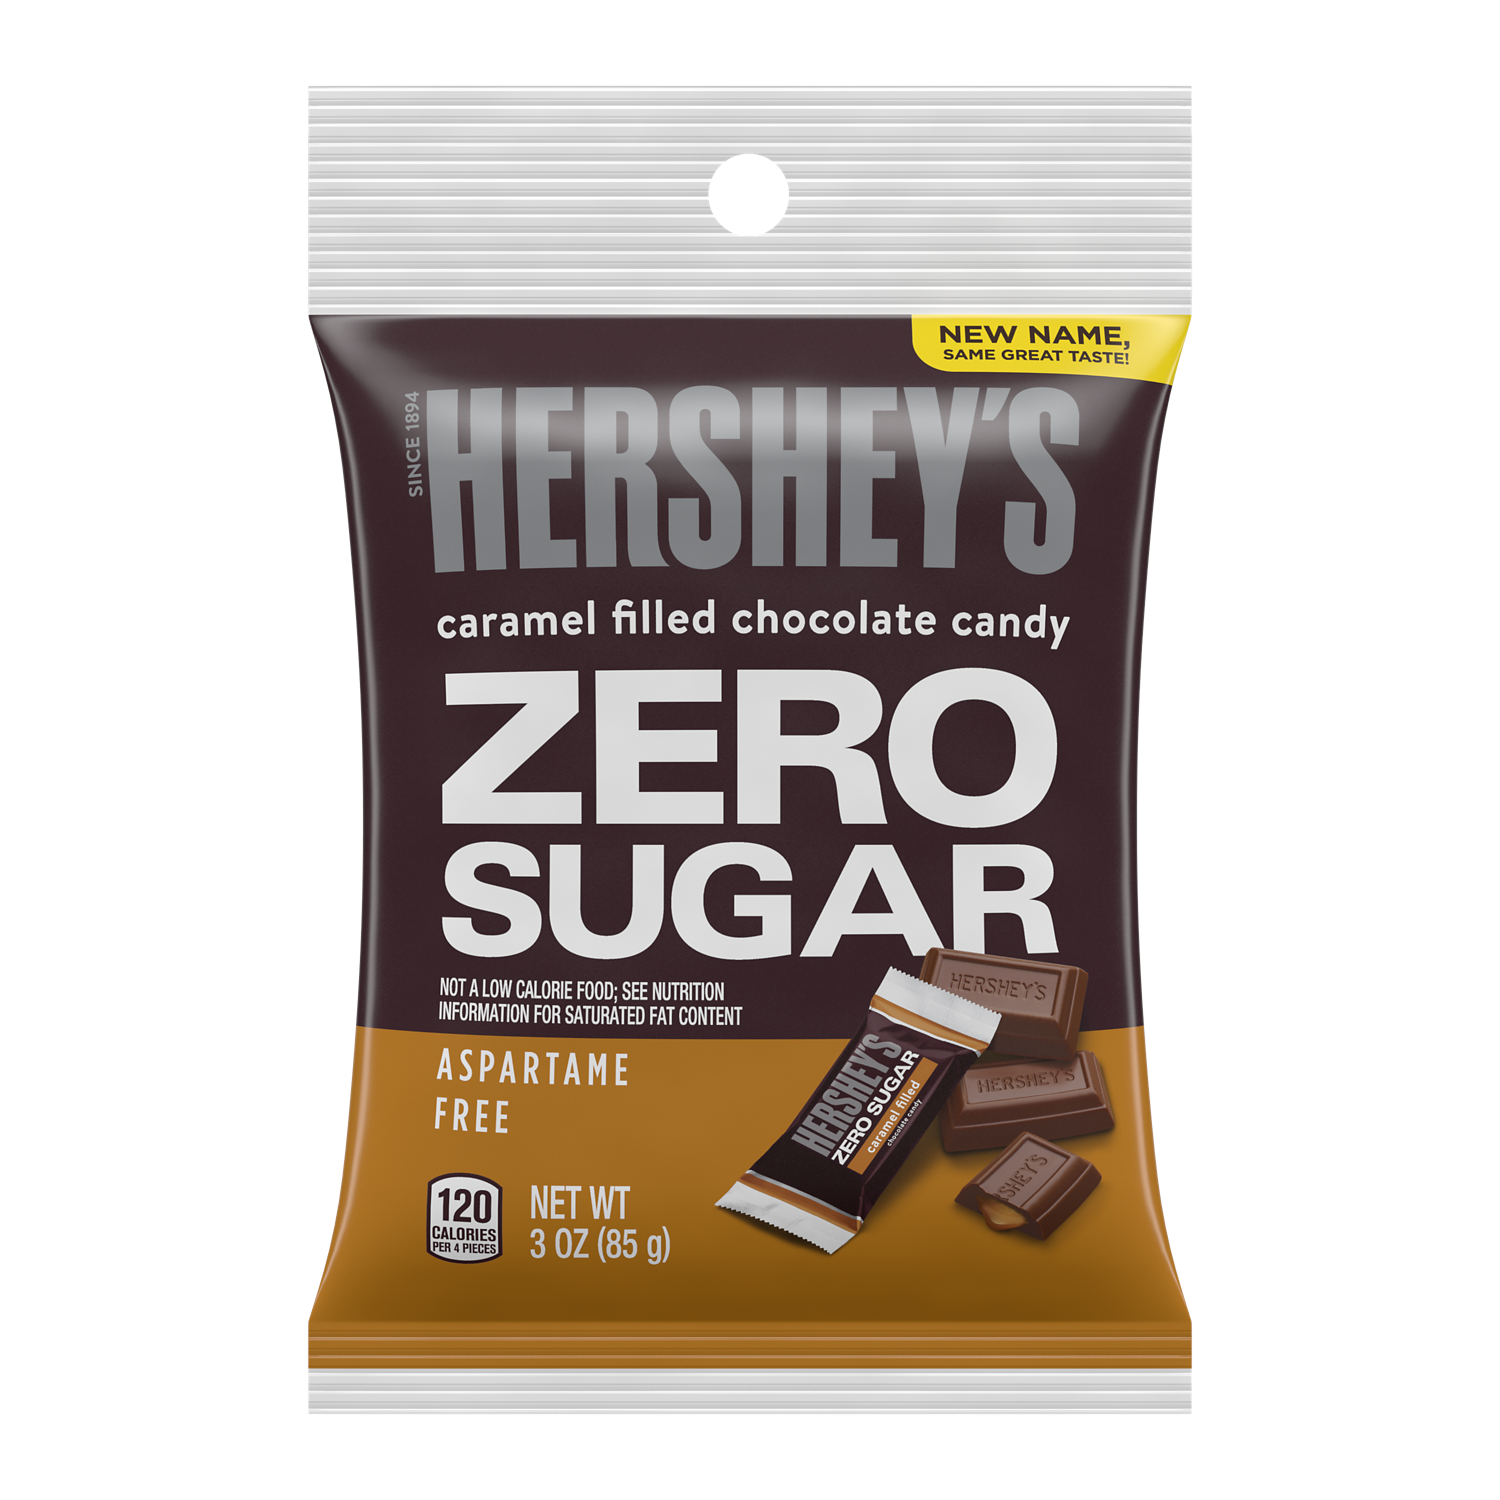 HERSHEY'S Zero Sugar Caramel Filled Chocolate Candy, 3 oz bag - Front of Package